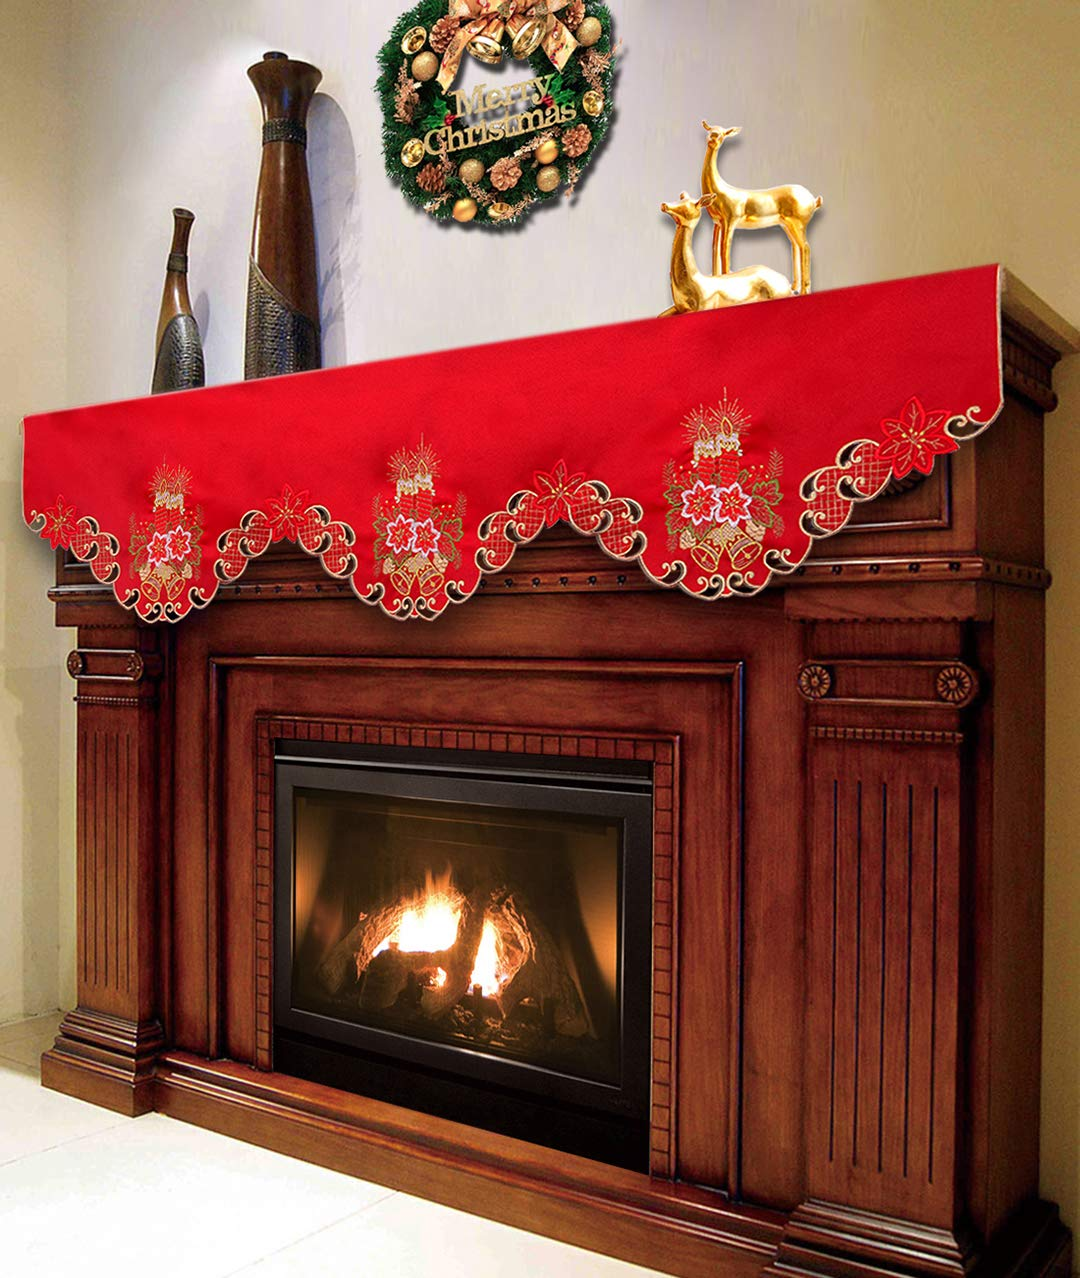 Grelucgo Christmas Holiday Mantel Scarf, Runner, Winter Decorations 69 by 17 Inch by Grelucgo